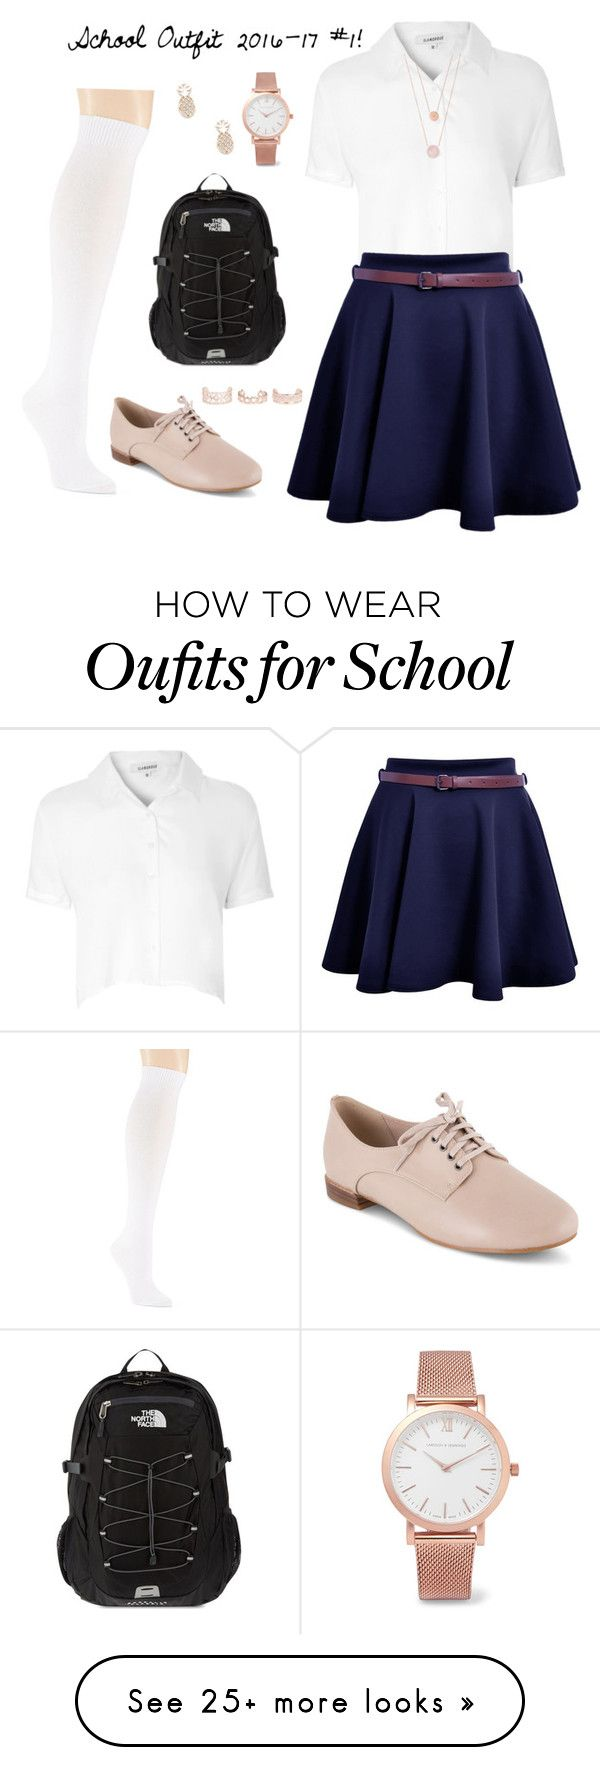 """""""School Outfit 2016-17 #1!"""" by designer01kitty on Polyvore featuring Glamorous, Hue, Clarks, The North Face, Larsson & Jennings, Michael Kors, New Look, Sole Society, school and uniform"""